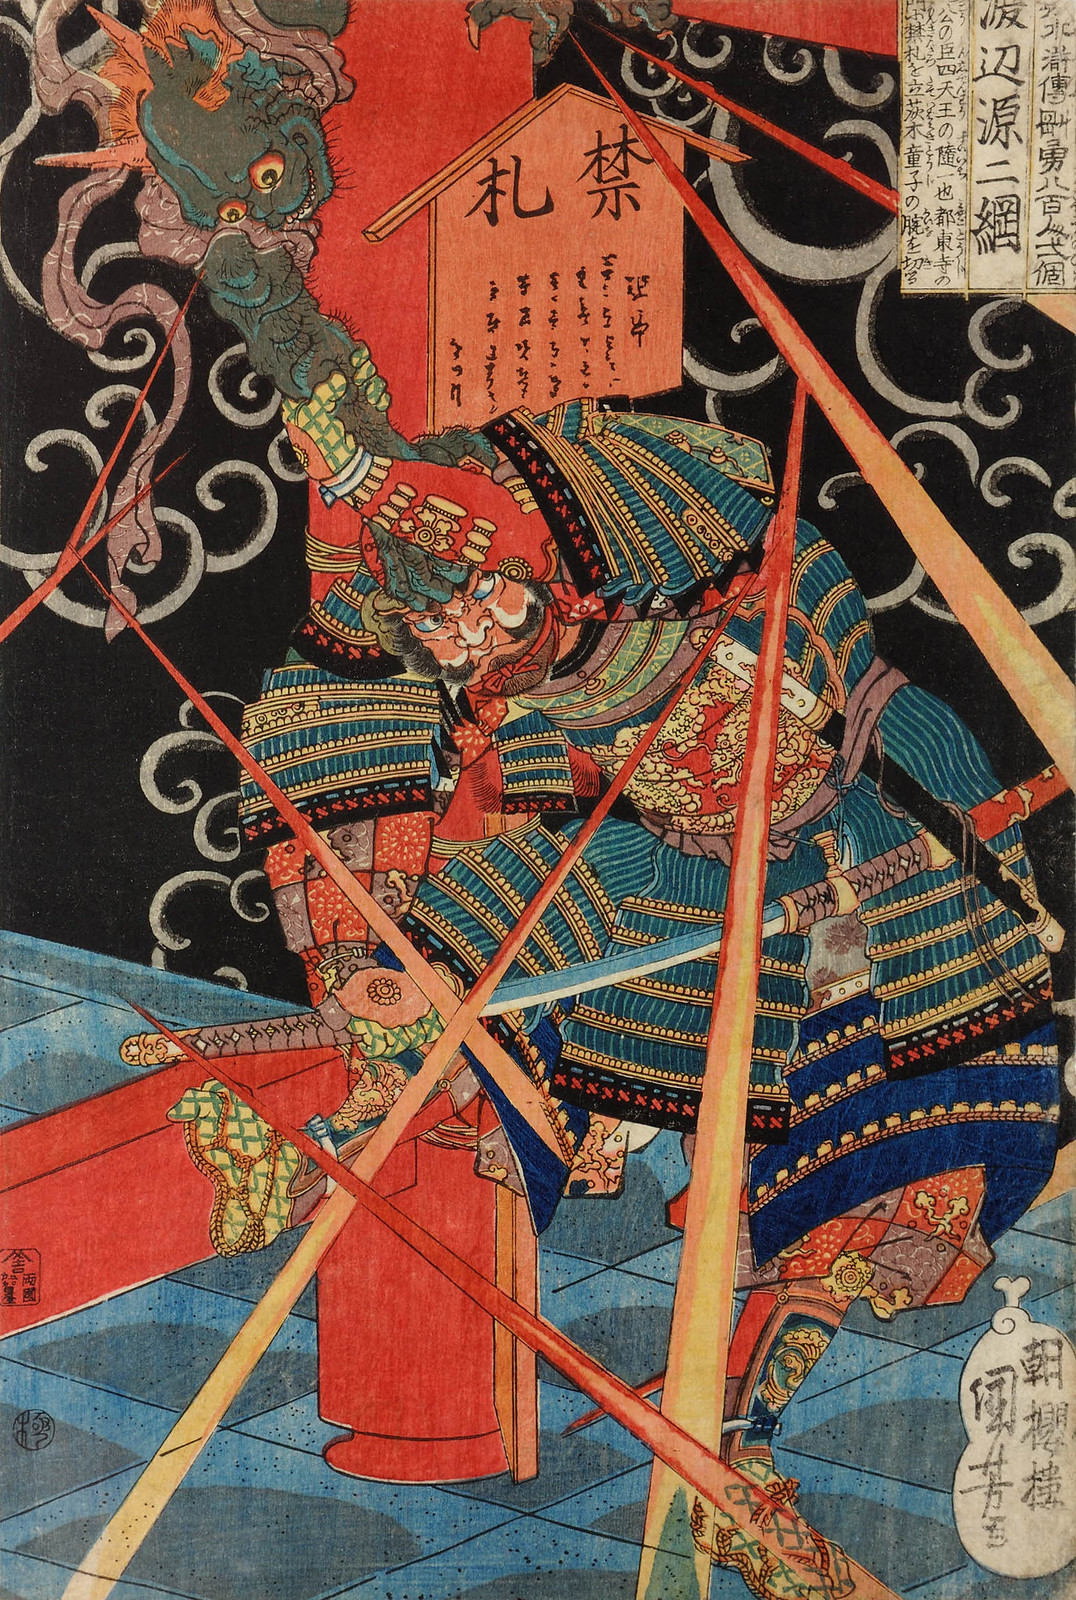 Utagawa Kuniyoshi - Takiguchi U-Toneri Watanabe no Tsuna about to cut off the arm of Rashomon, who grasps his hair. Edo Period